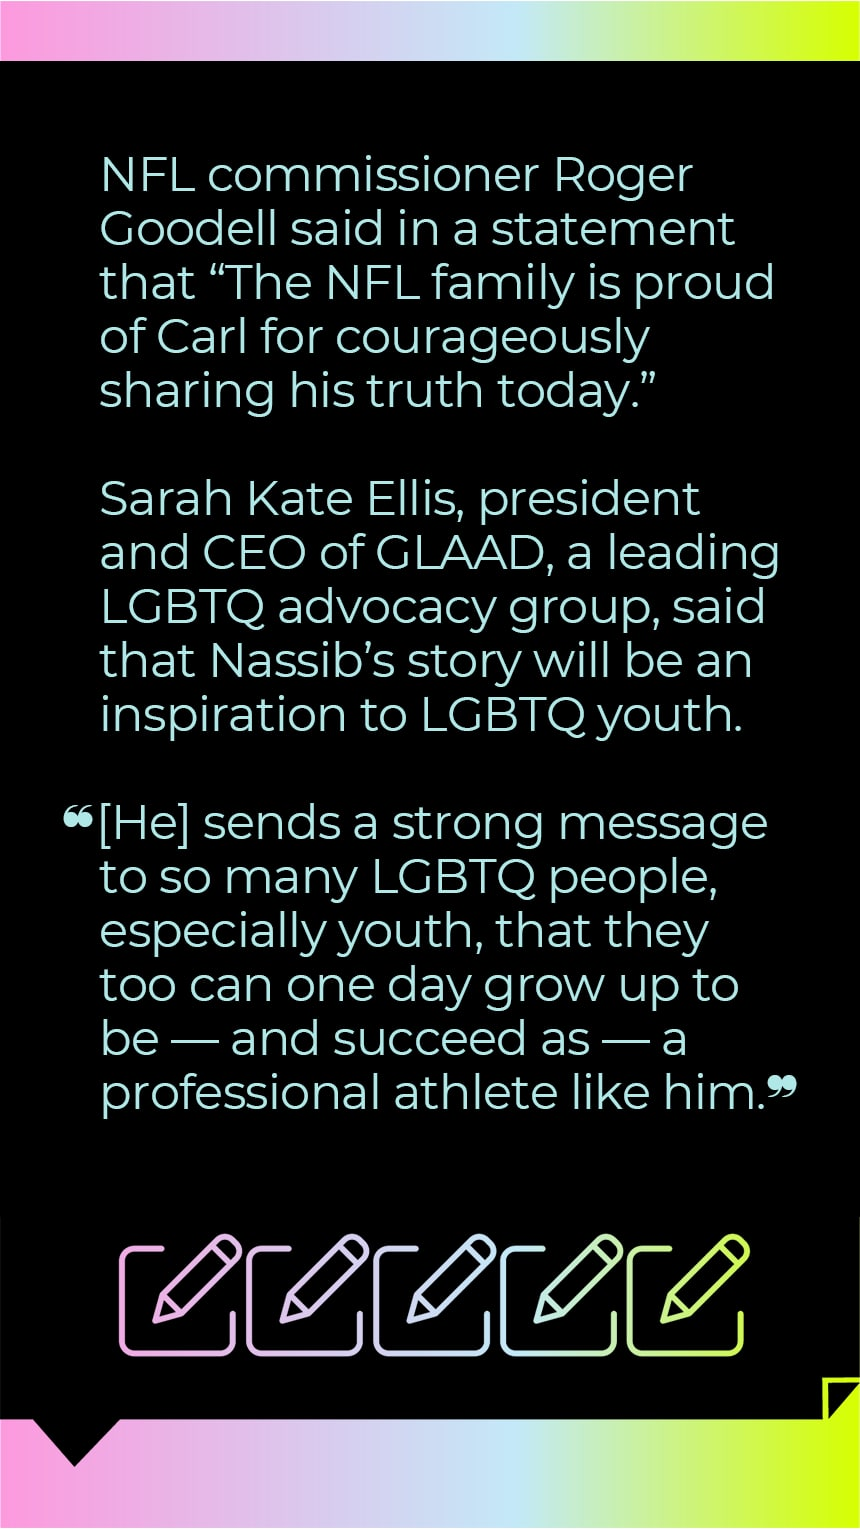 """NFL commissioner Roger Goodell said in a statement that """"The NFL family is proud of Carl for courageously sharing his truth today.""""  Sarah Kate Ellis, president and CEO of GLAAD, a leading LGBTQ advocacy group, said that Nassib's story will be an inspiration to LGBTQ youth.  """"[He] sends a strong message to so many LGBTQ people, especially youth, that they too can one day grow up to be — and succeed as — a professional athlete like him."""""""